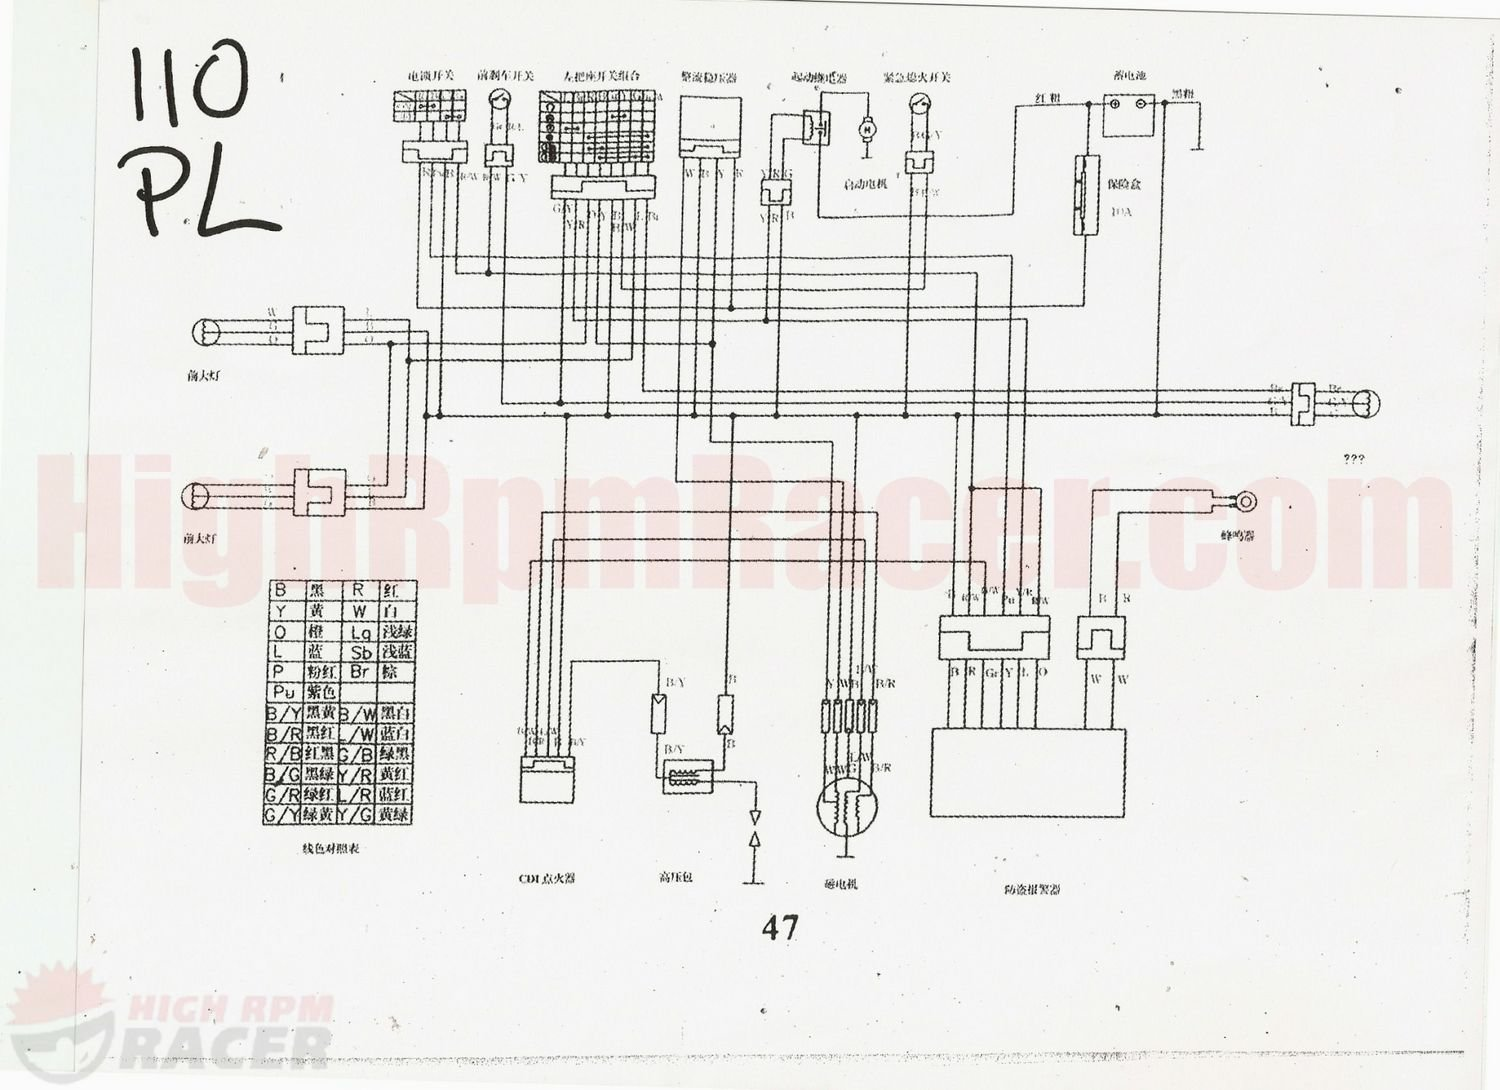 panther110pl_wd panther atv 110pl wiring diagram $0 00 coolster 110 atv wiring diagram at edmiracle.co